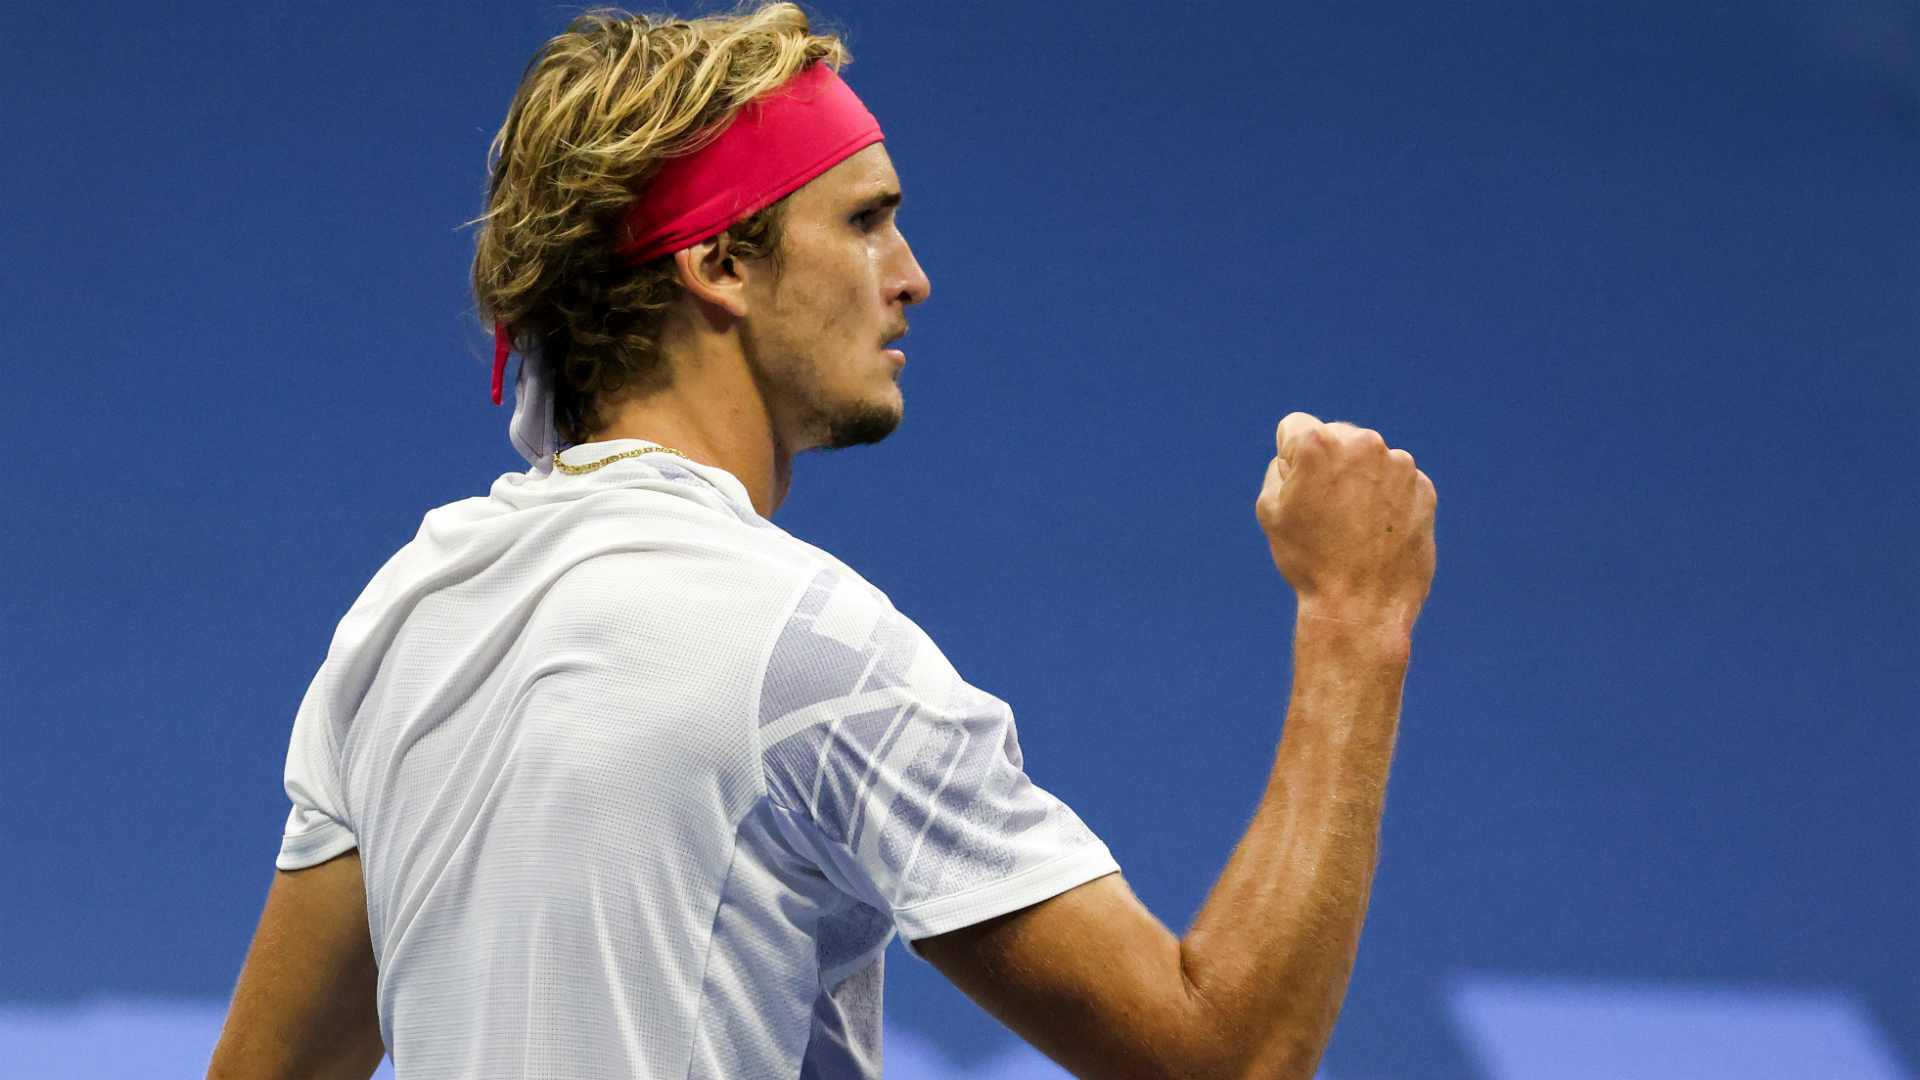 US Open 2020: Zverev completes stunning comeback to reach first slam final